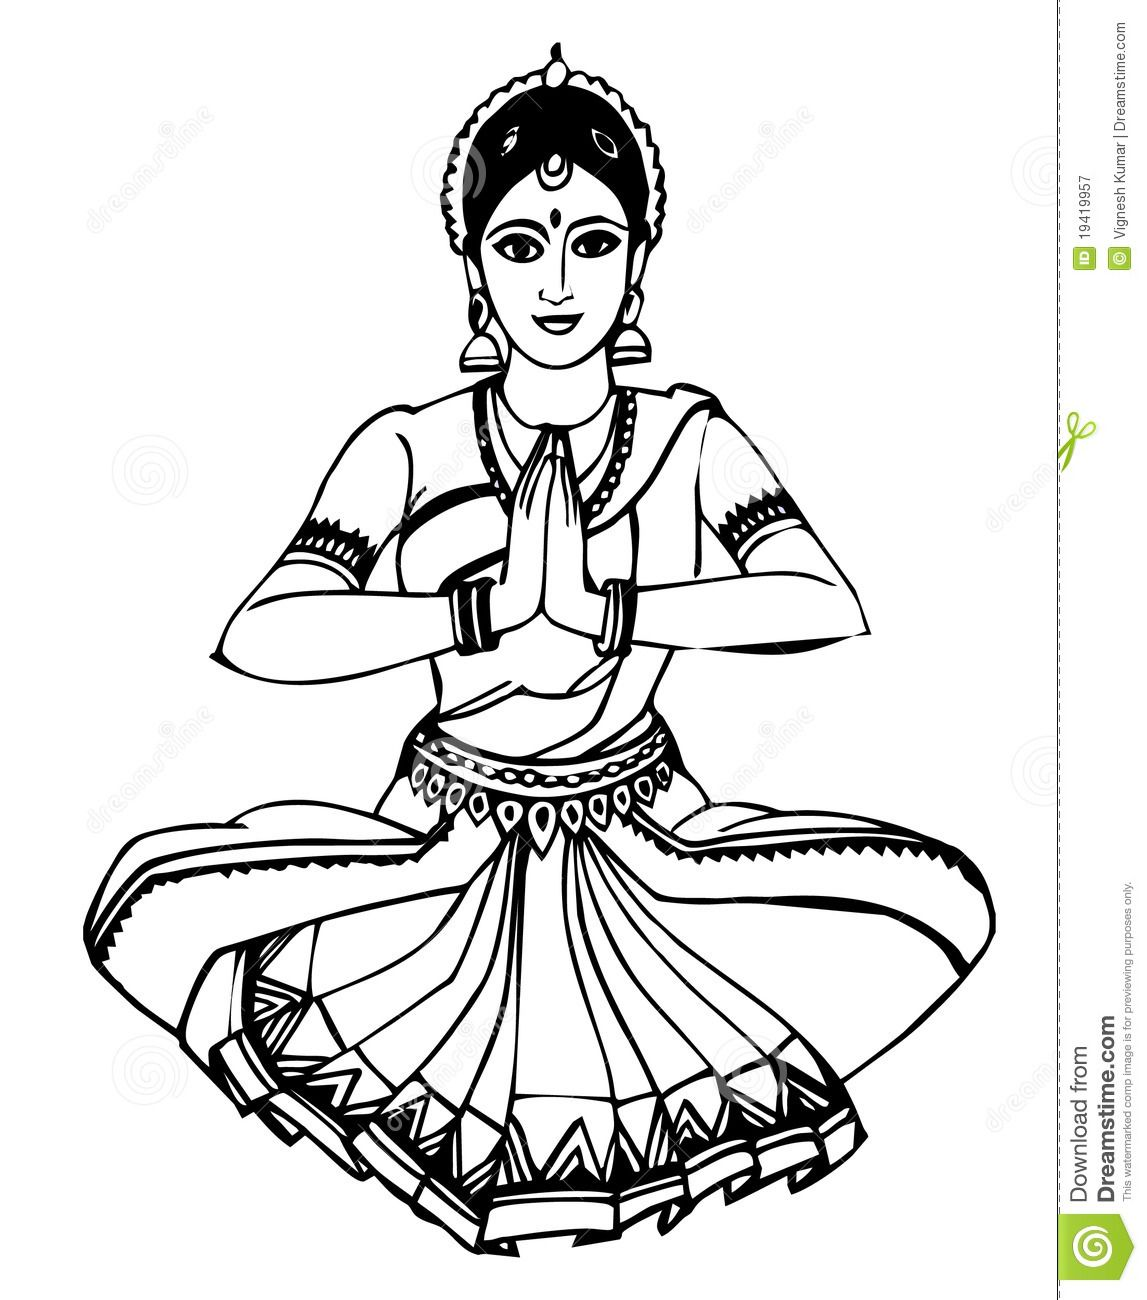 Dancer coloring pages - Coloring Pages & Pictures ...